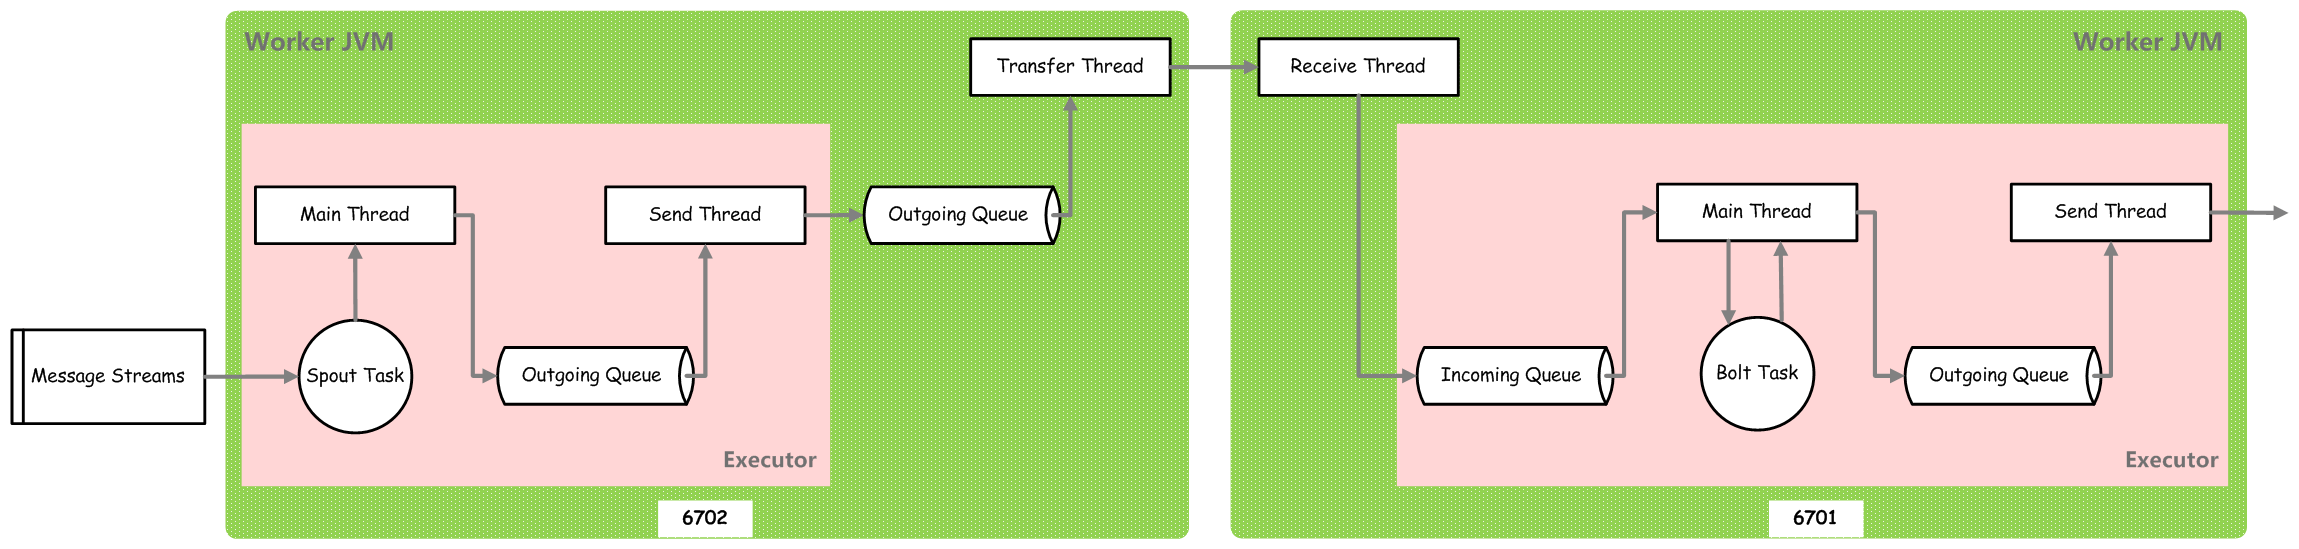 storm-transfer-tuples-between-spout-and-bolt-task-in-different-worker